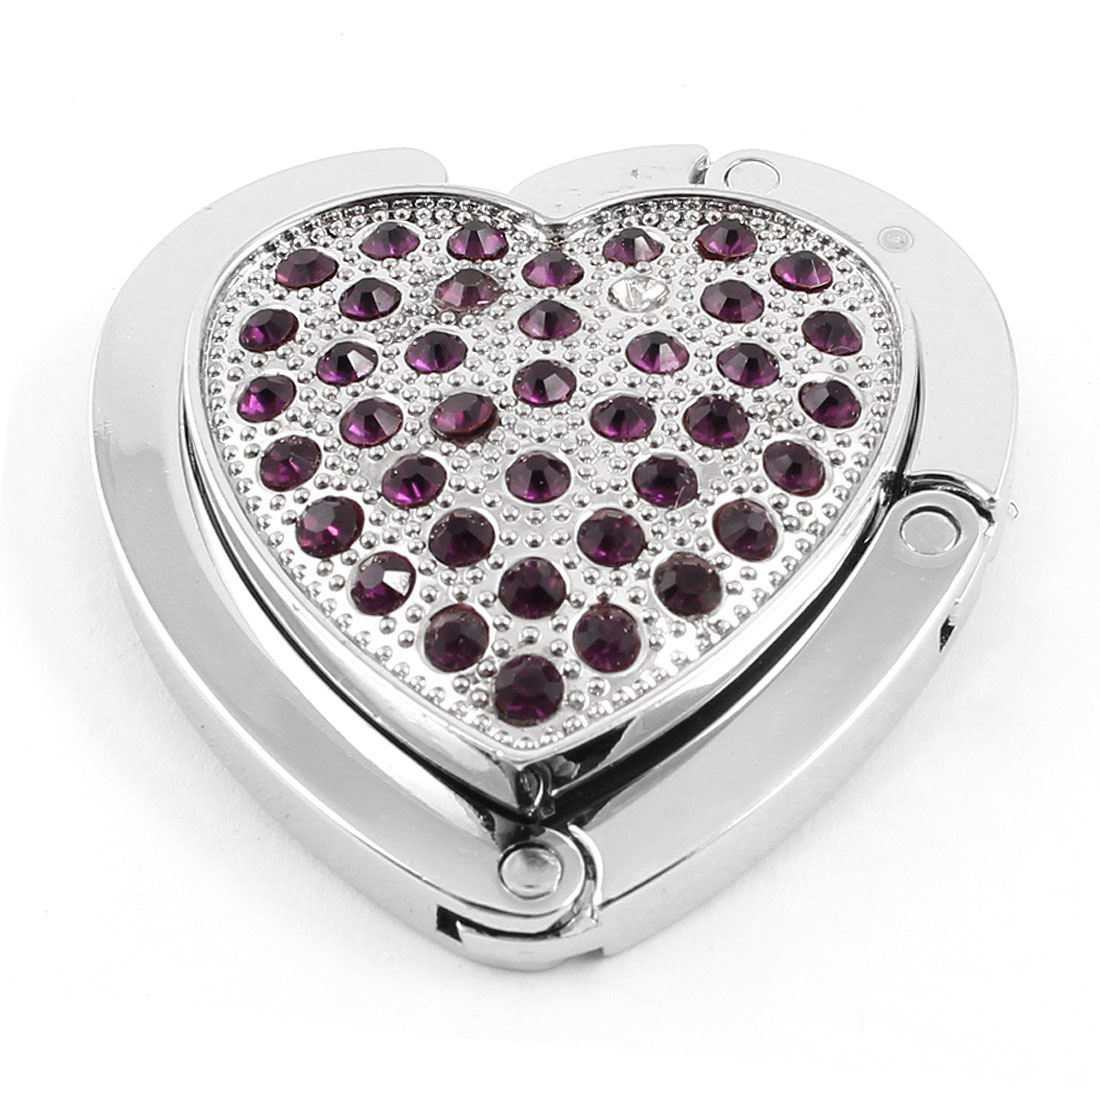 Rhinestones Heart Shaped Foldup Hook Dark Purple Silver Tone for Handbag